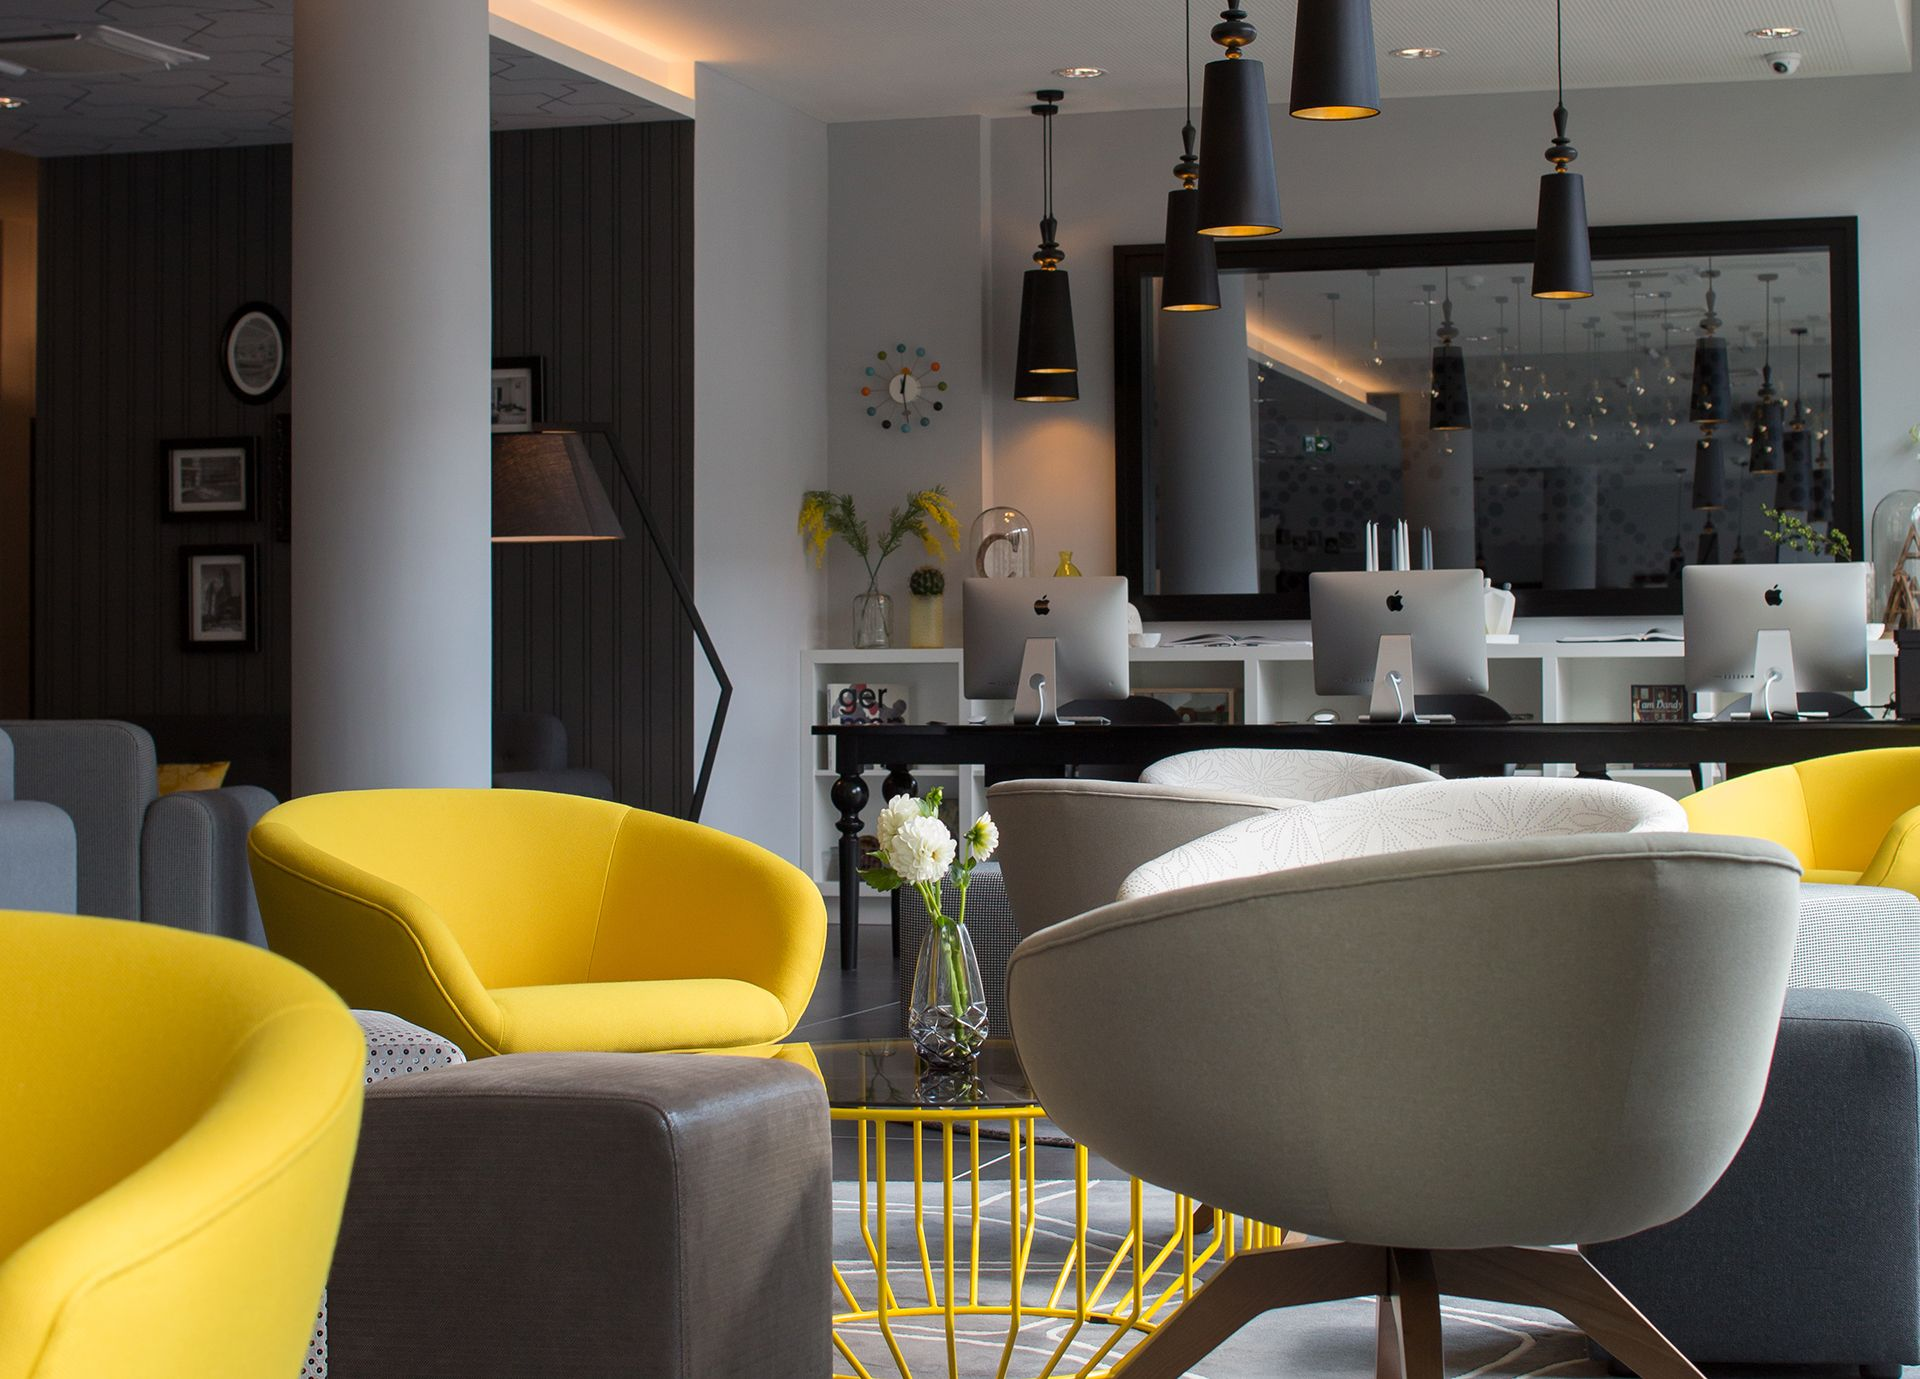 Lobby im Serviced Apartment Capri by Fraser in Frankfurt am Main